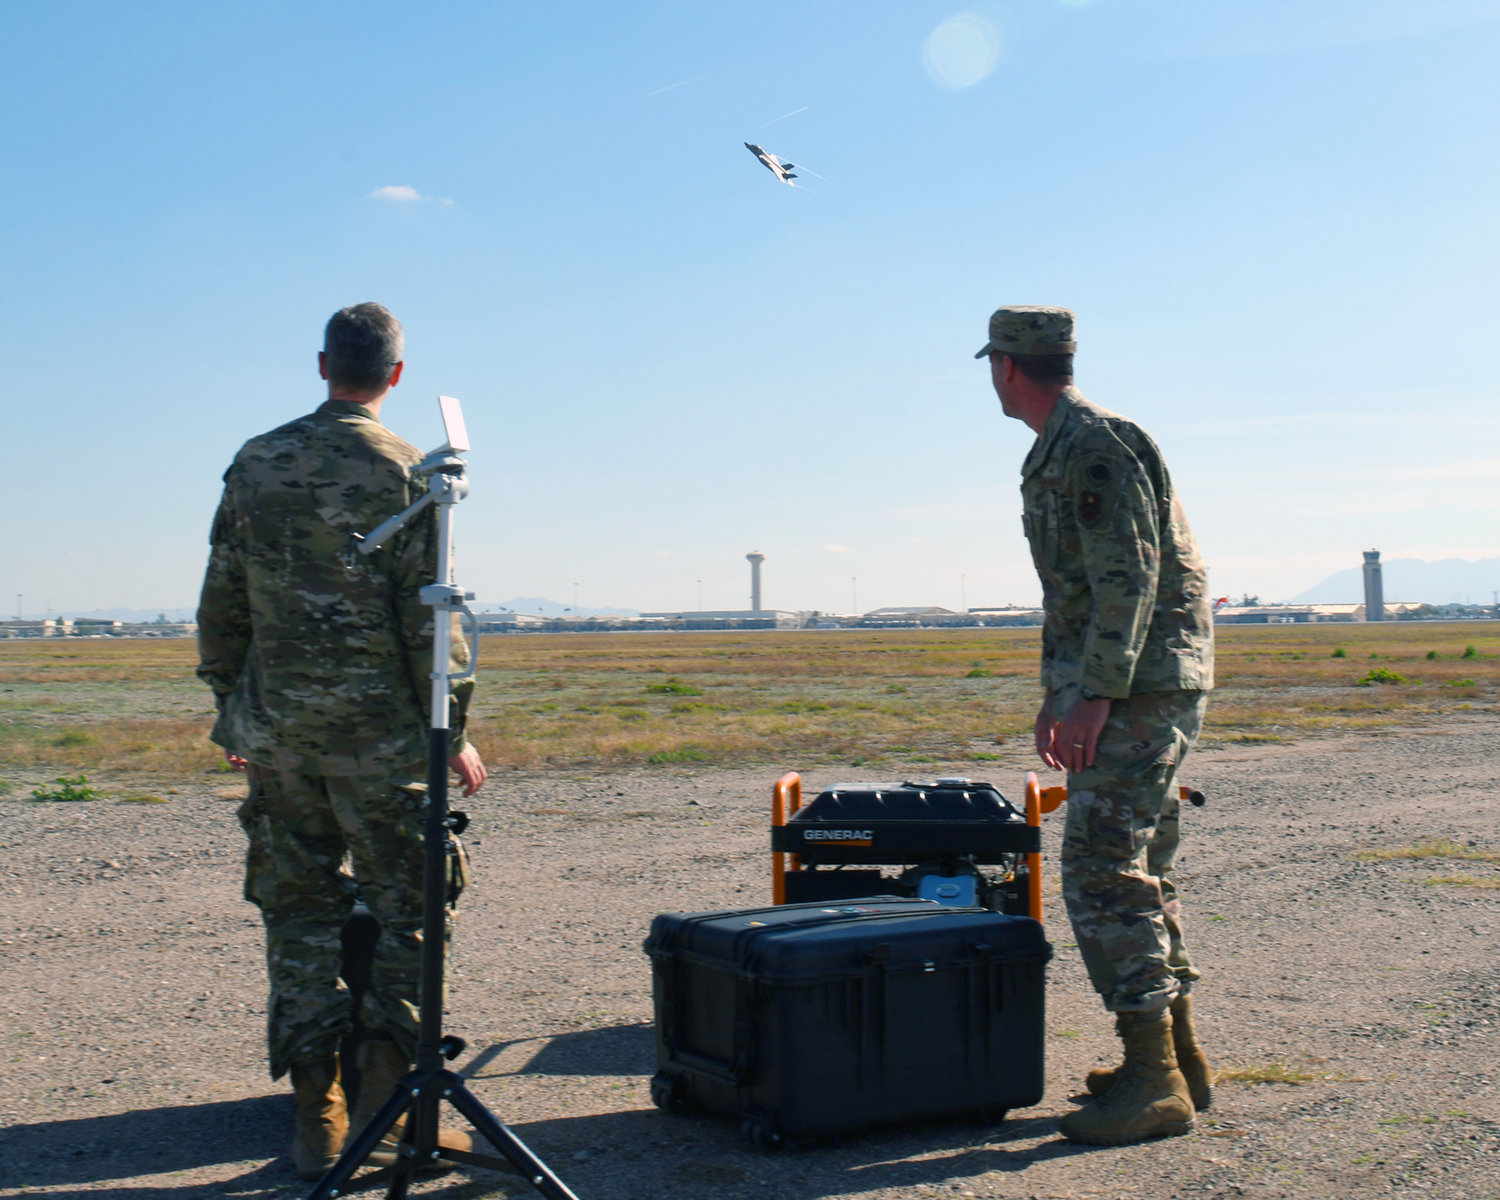 First Lt. Adam Treece, 56th Operations Support Squadron intelligence readiness chief, and Capt. David Coyle, 56th OSS weapons officer, showcase a prototype threat emitter system Jan. 17 at Luke Air Force Base.